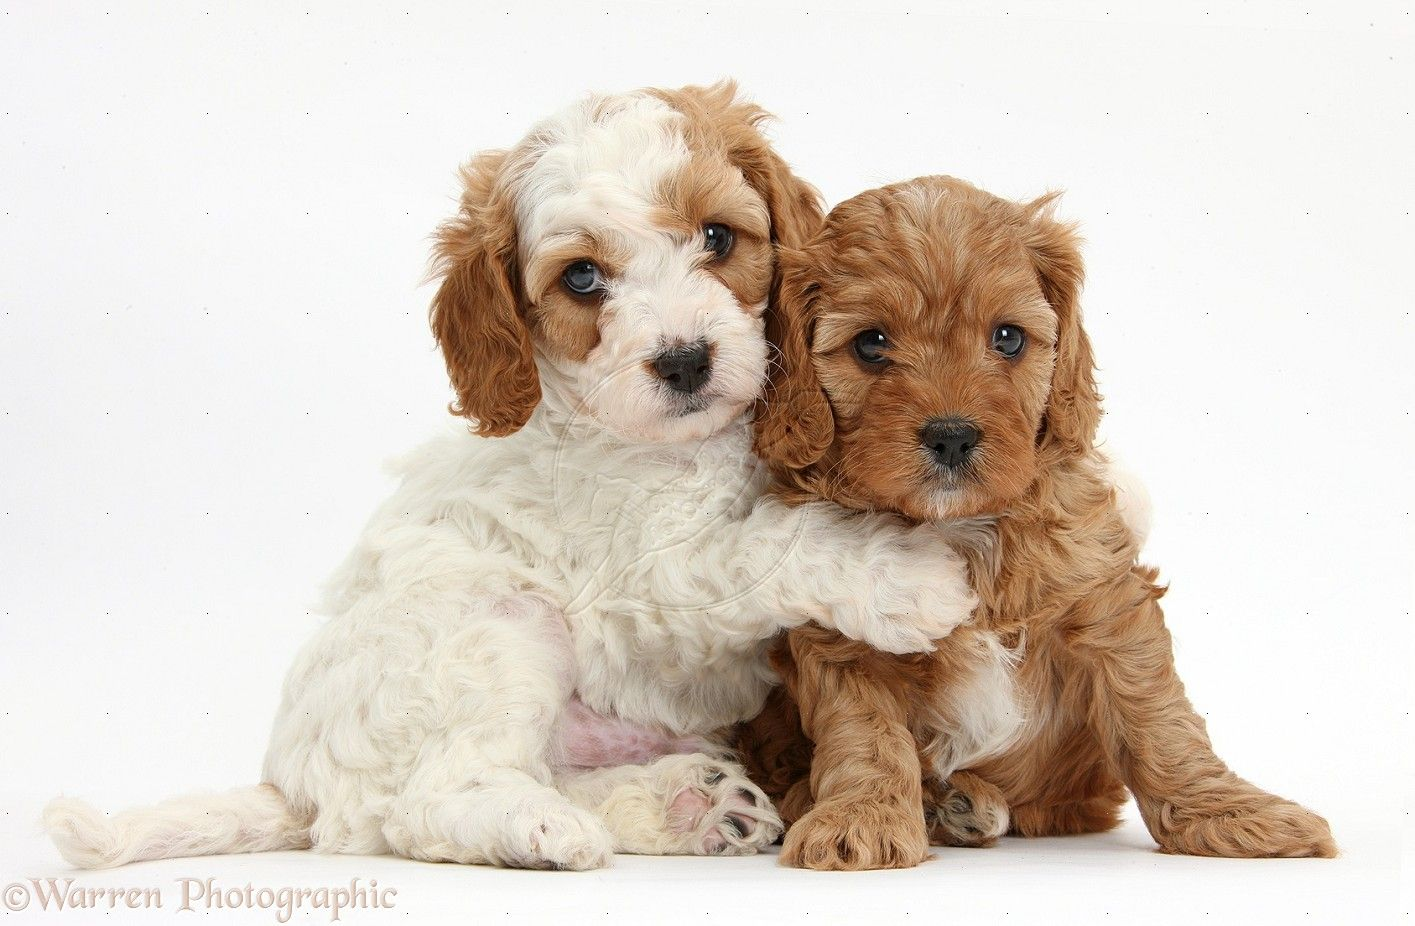 cavapoo puppies | ... Cute red and red-and-white Cavapoo puppies, 5 weeks old, hugging This could tip me over the edge......................